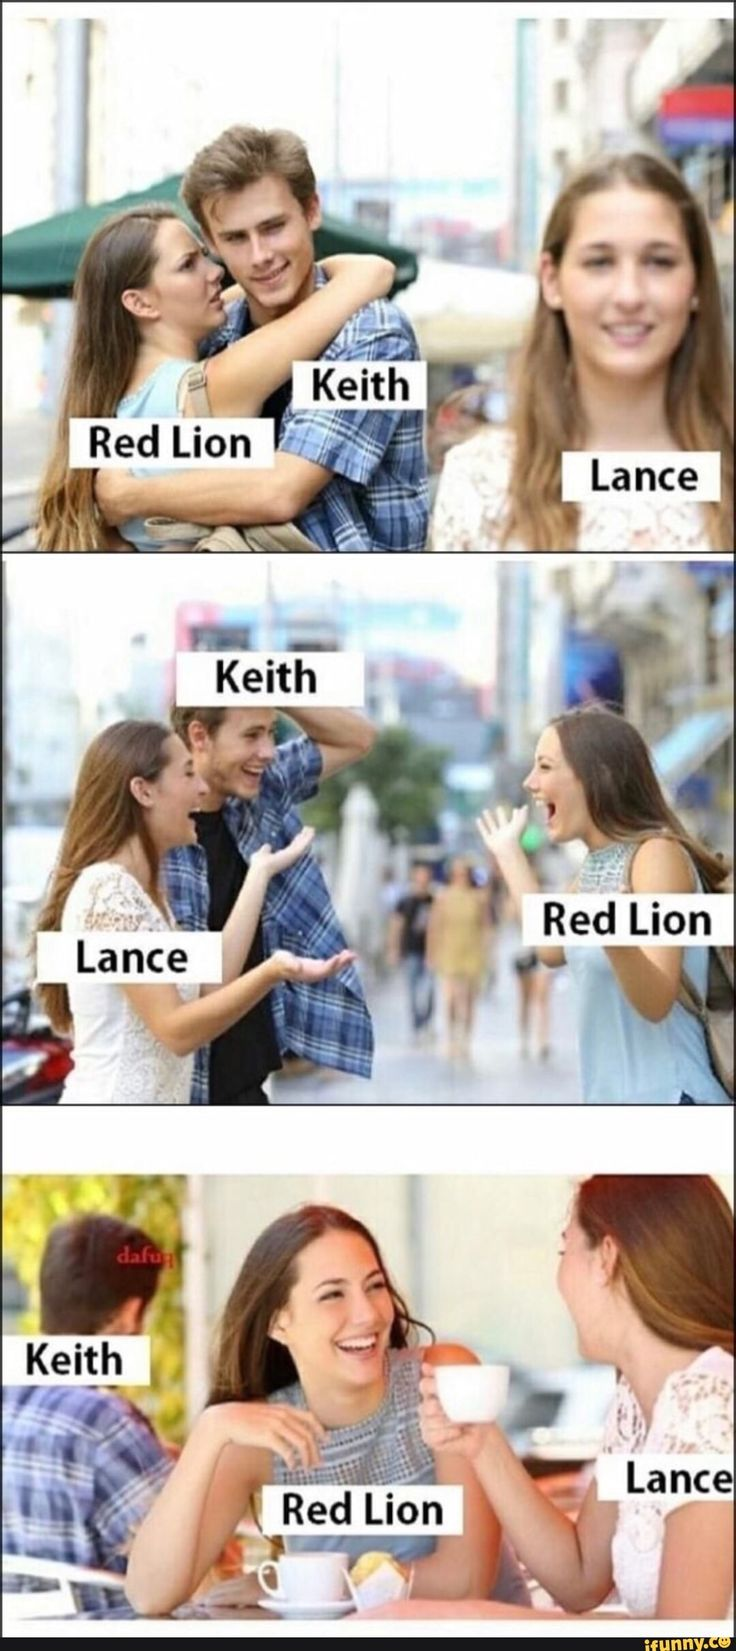 Keith / lance / the red lion